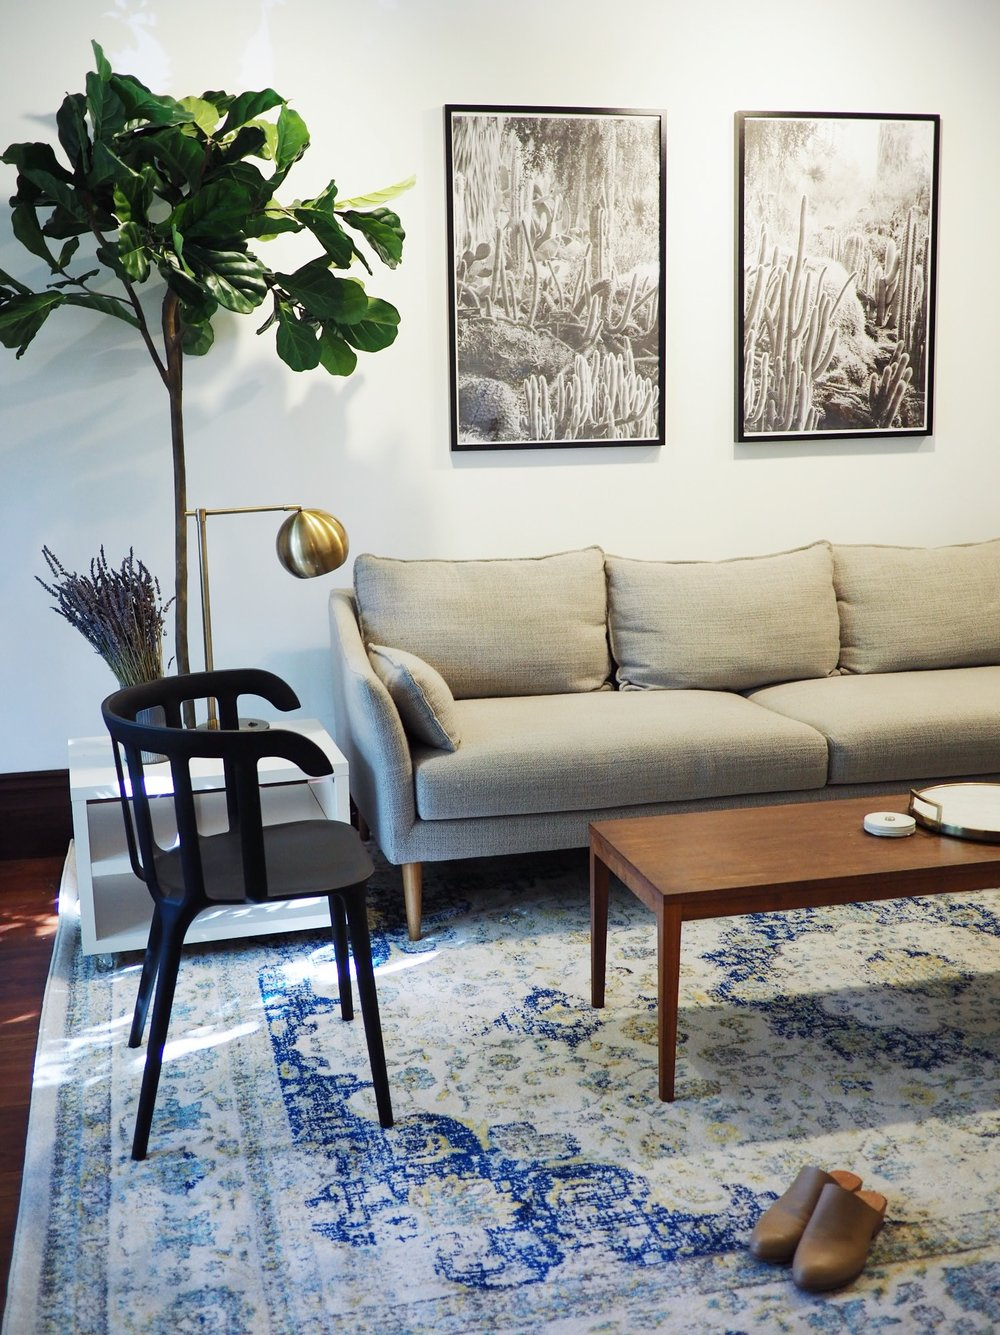 How To Buy And Frame Big Art For Less Than Eliza Kern Design - Coffee table less than $50